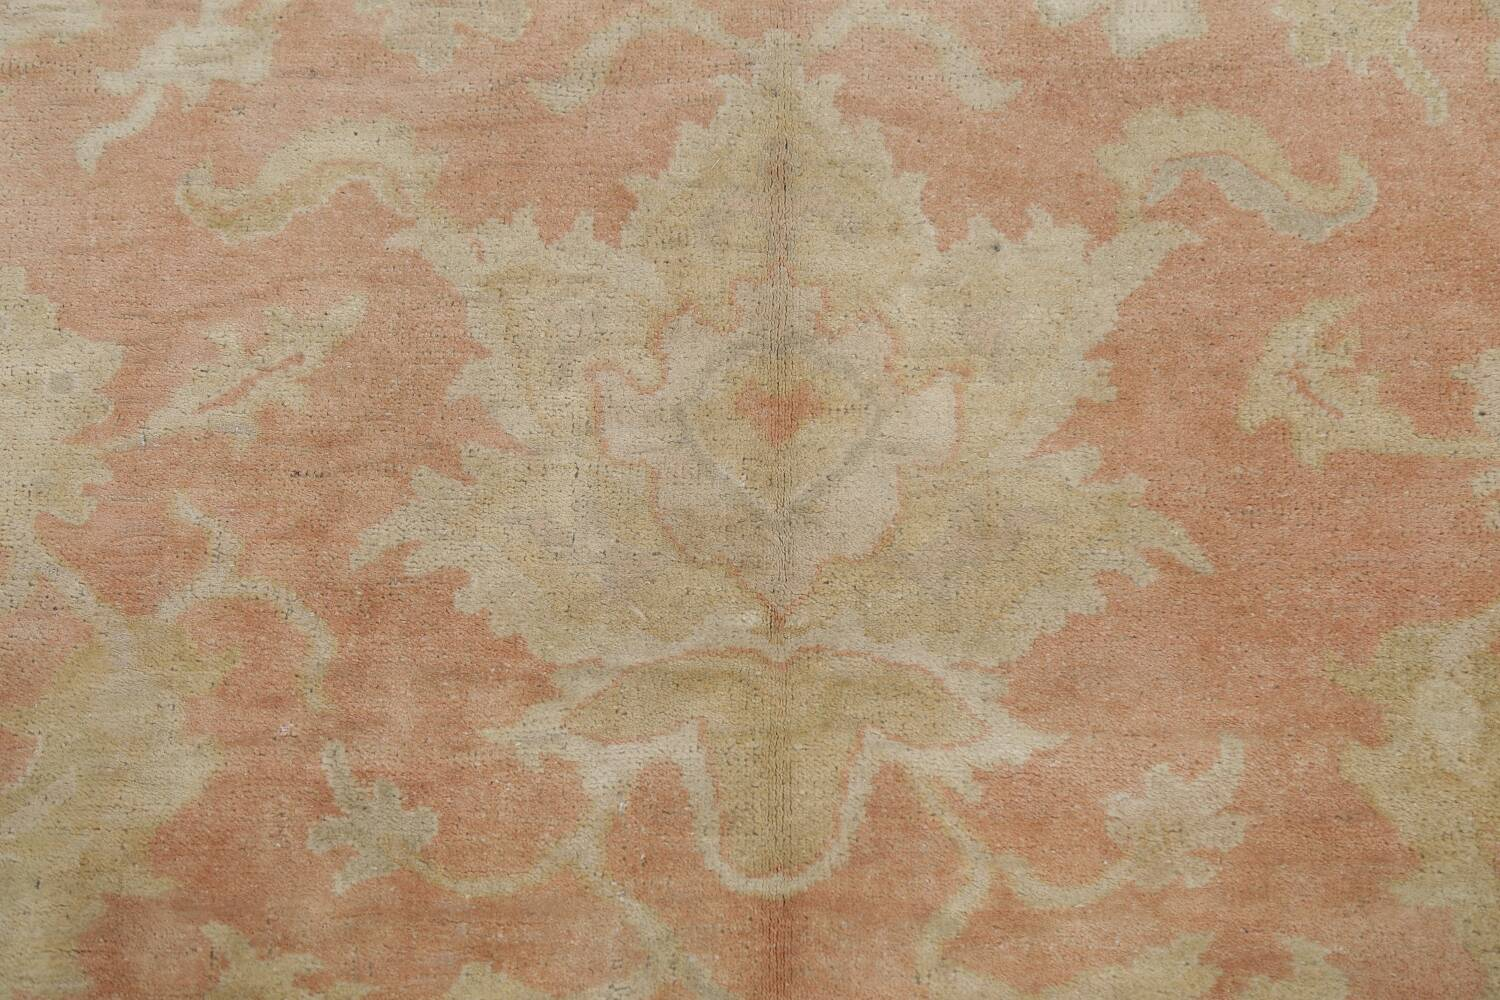 Vegetable Dye Antique Coral Peach Egyptian Area Rug 5x7 image 9